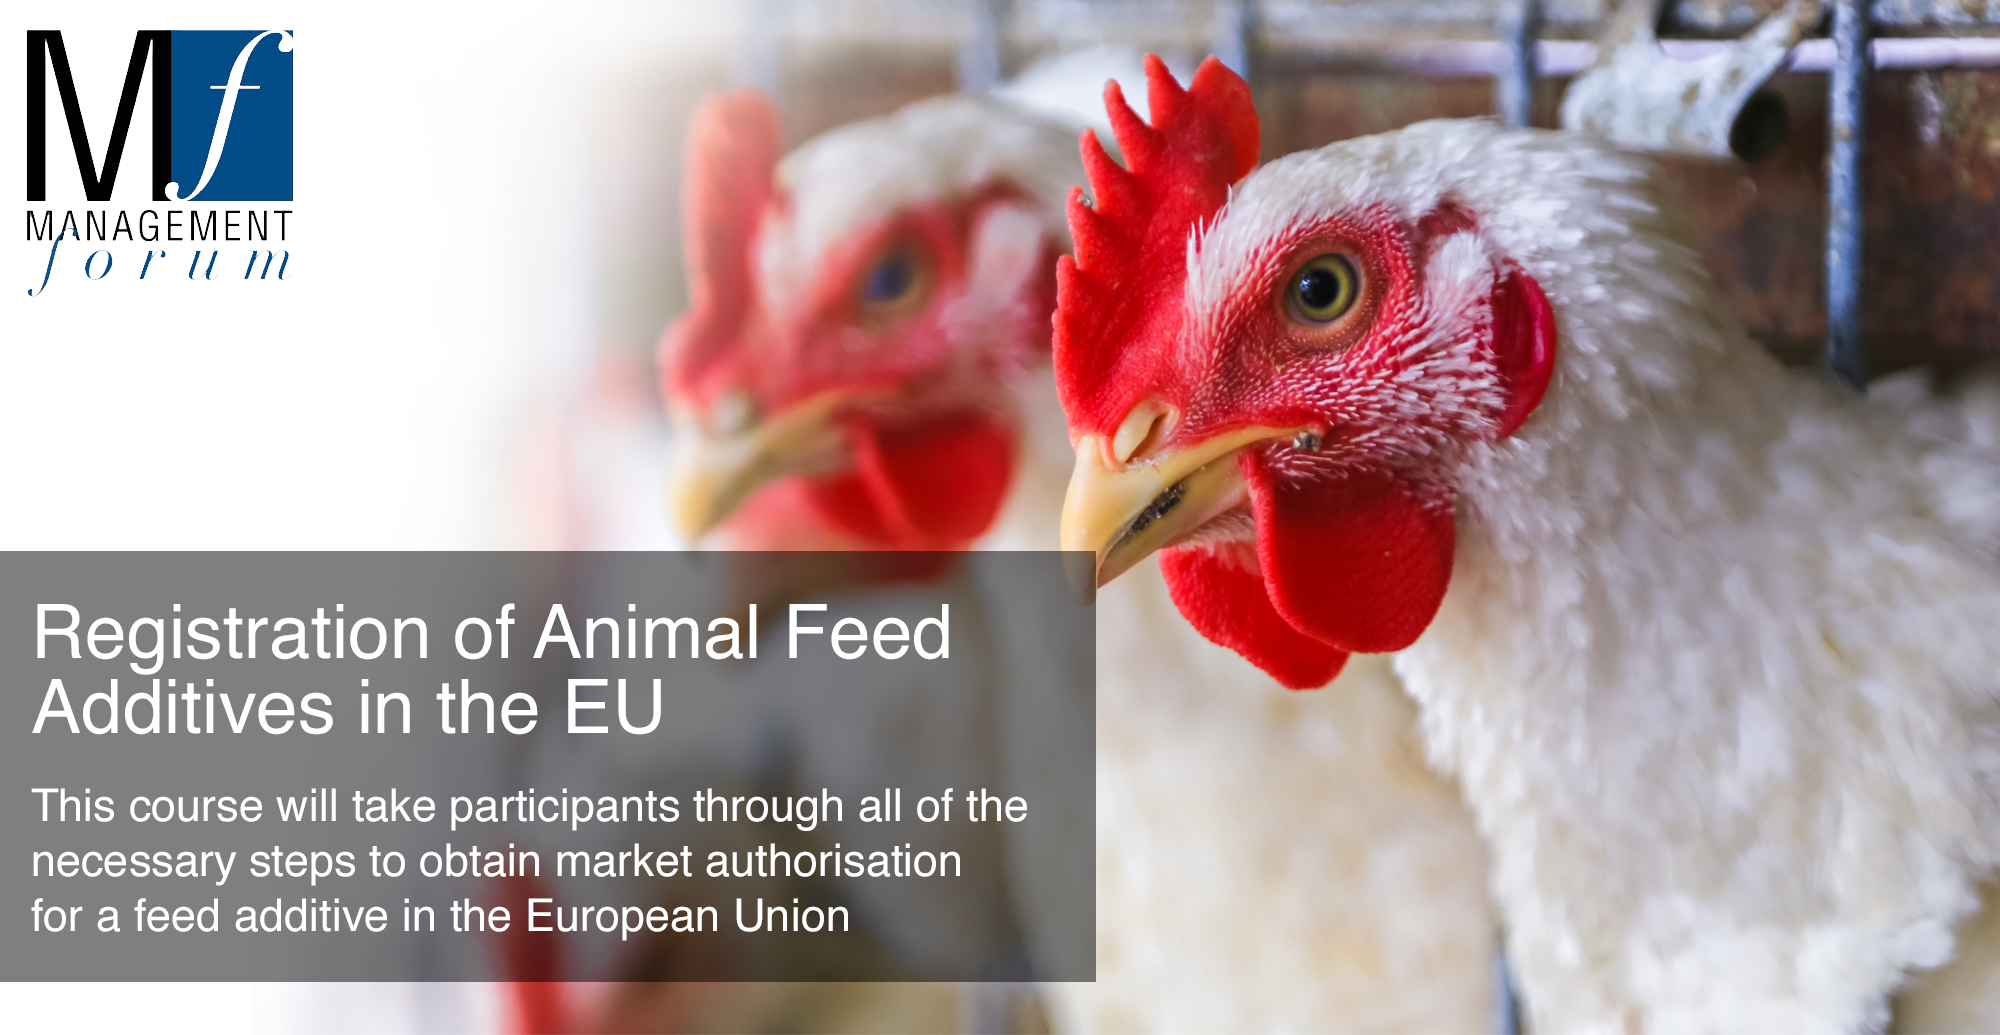 Two-day practical course with interactive workshops: Registration of Animal Feed Additives in the EU. 17-18 June 2020